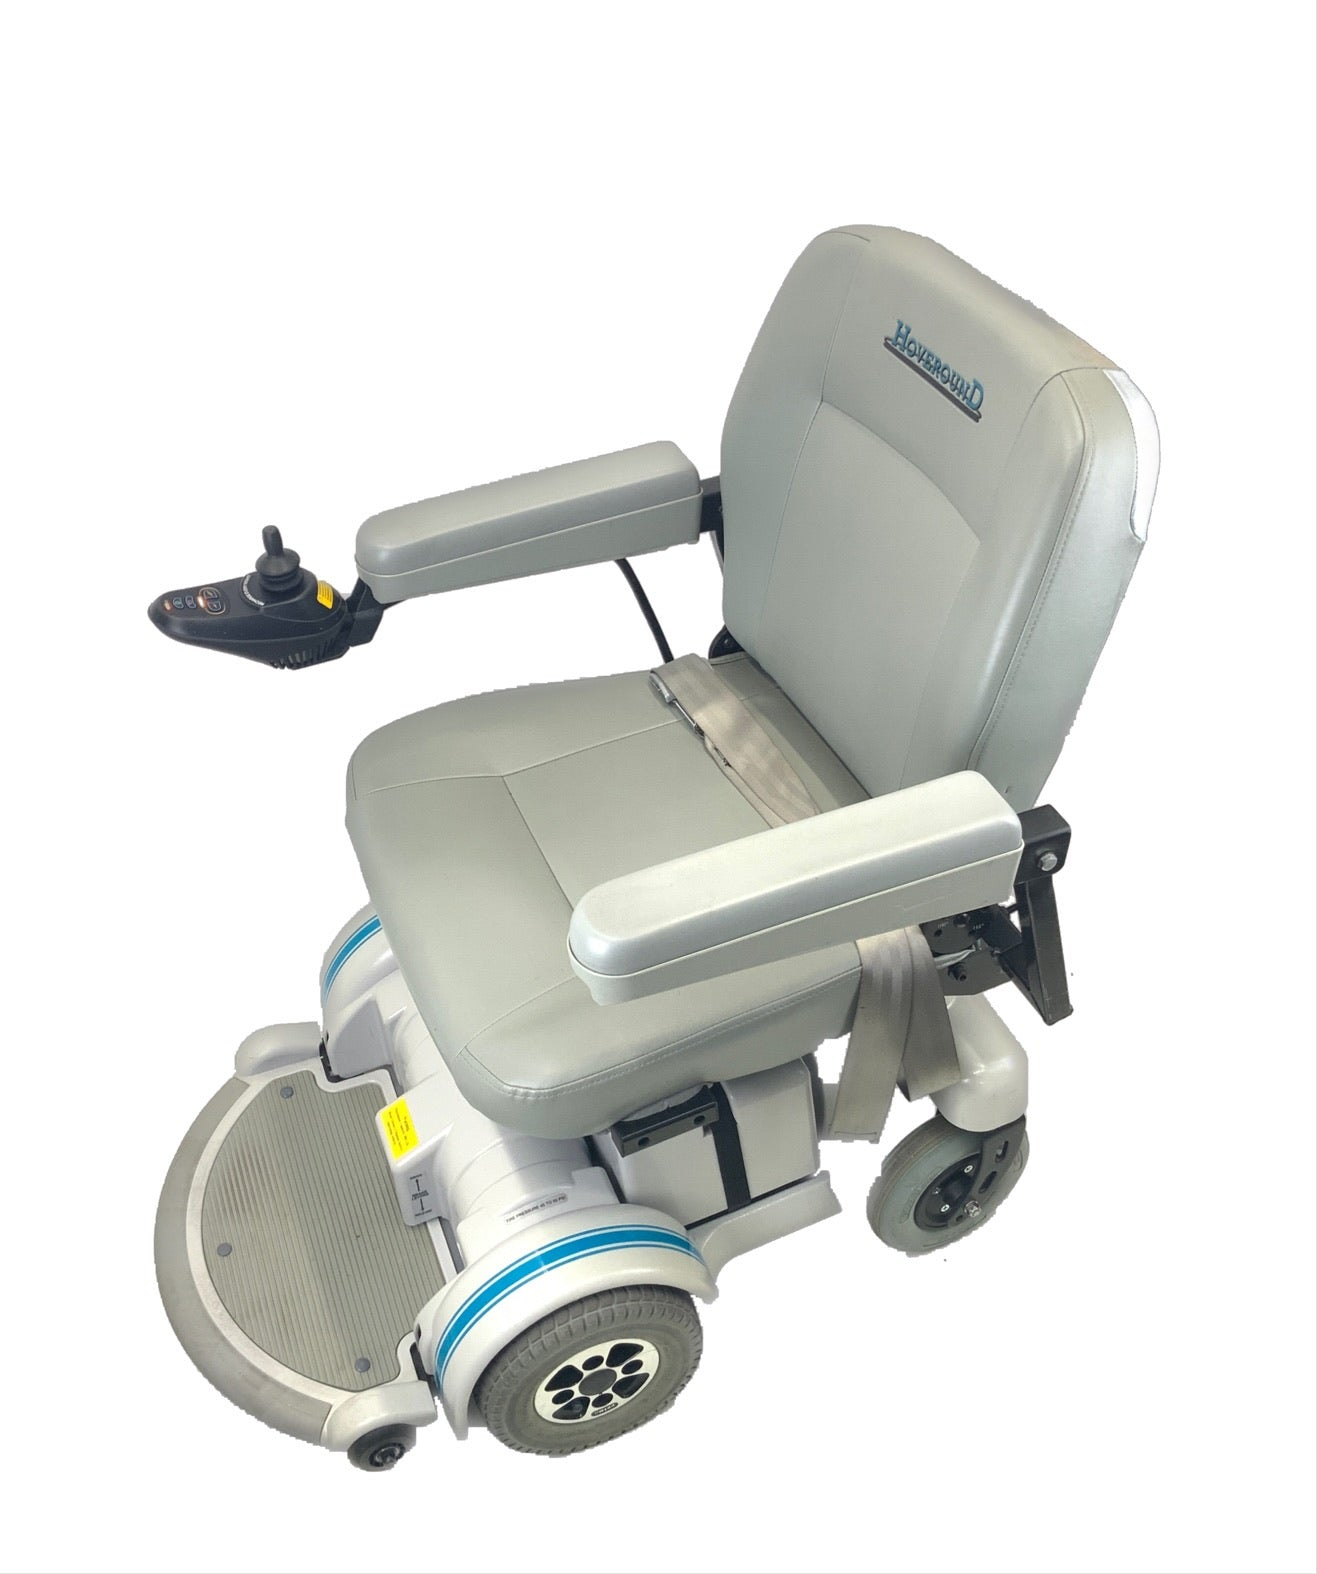 Hoveround MPV5 Compact Power Chair | 21